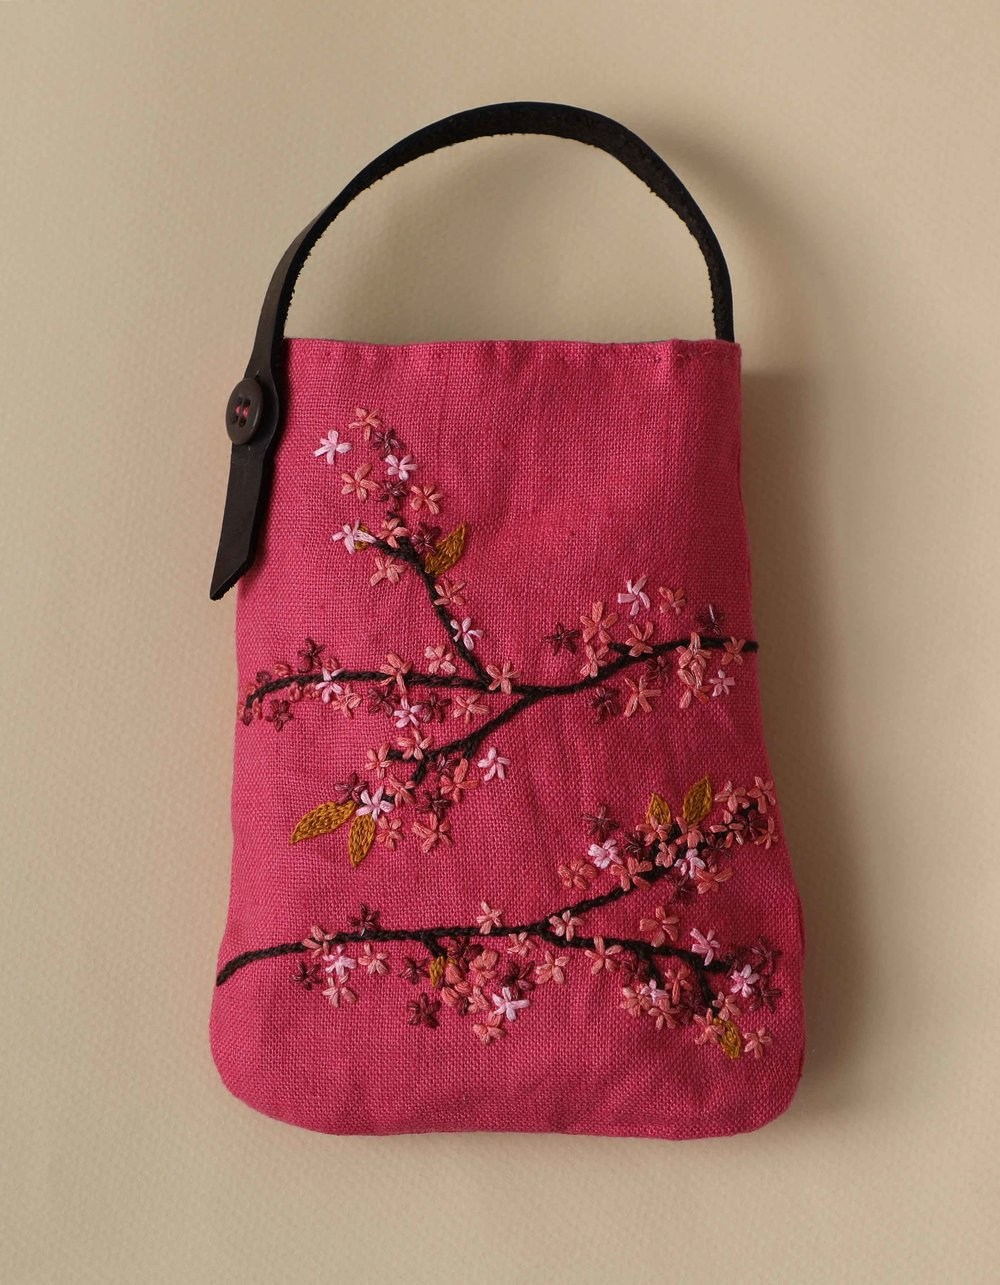 Sometime, stitching is just the thing to do to make a unique gift for someone or for yourself.  We made this little purse that is inspired by early Spring.